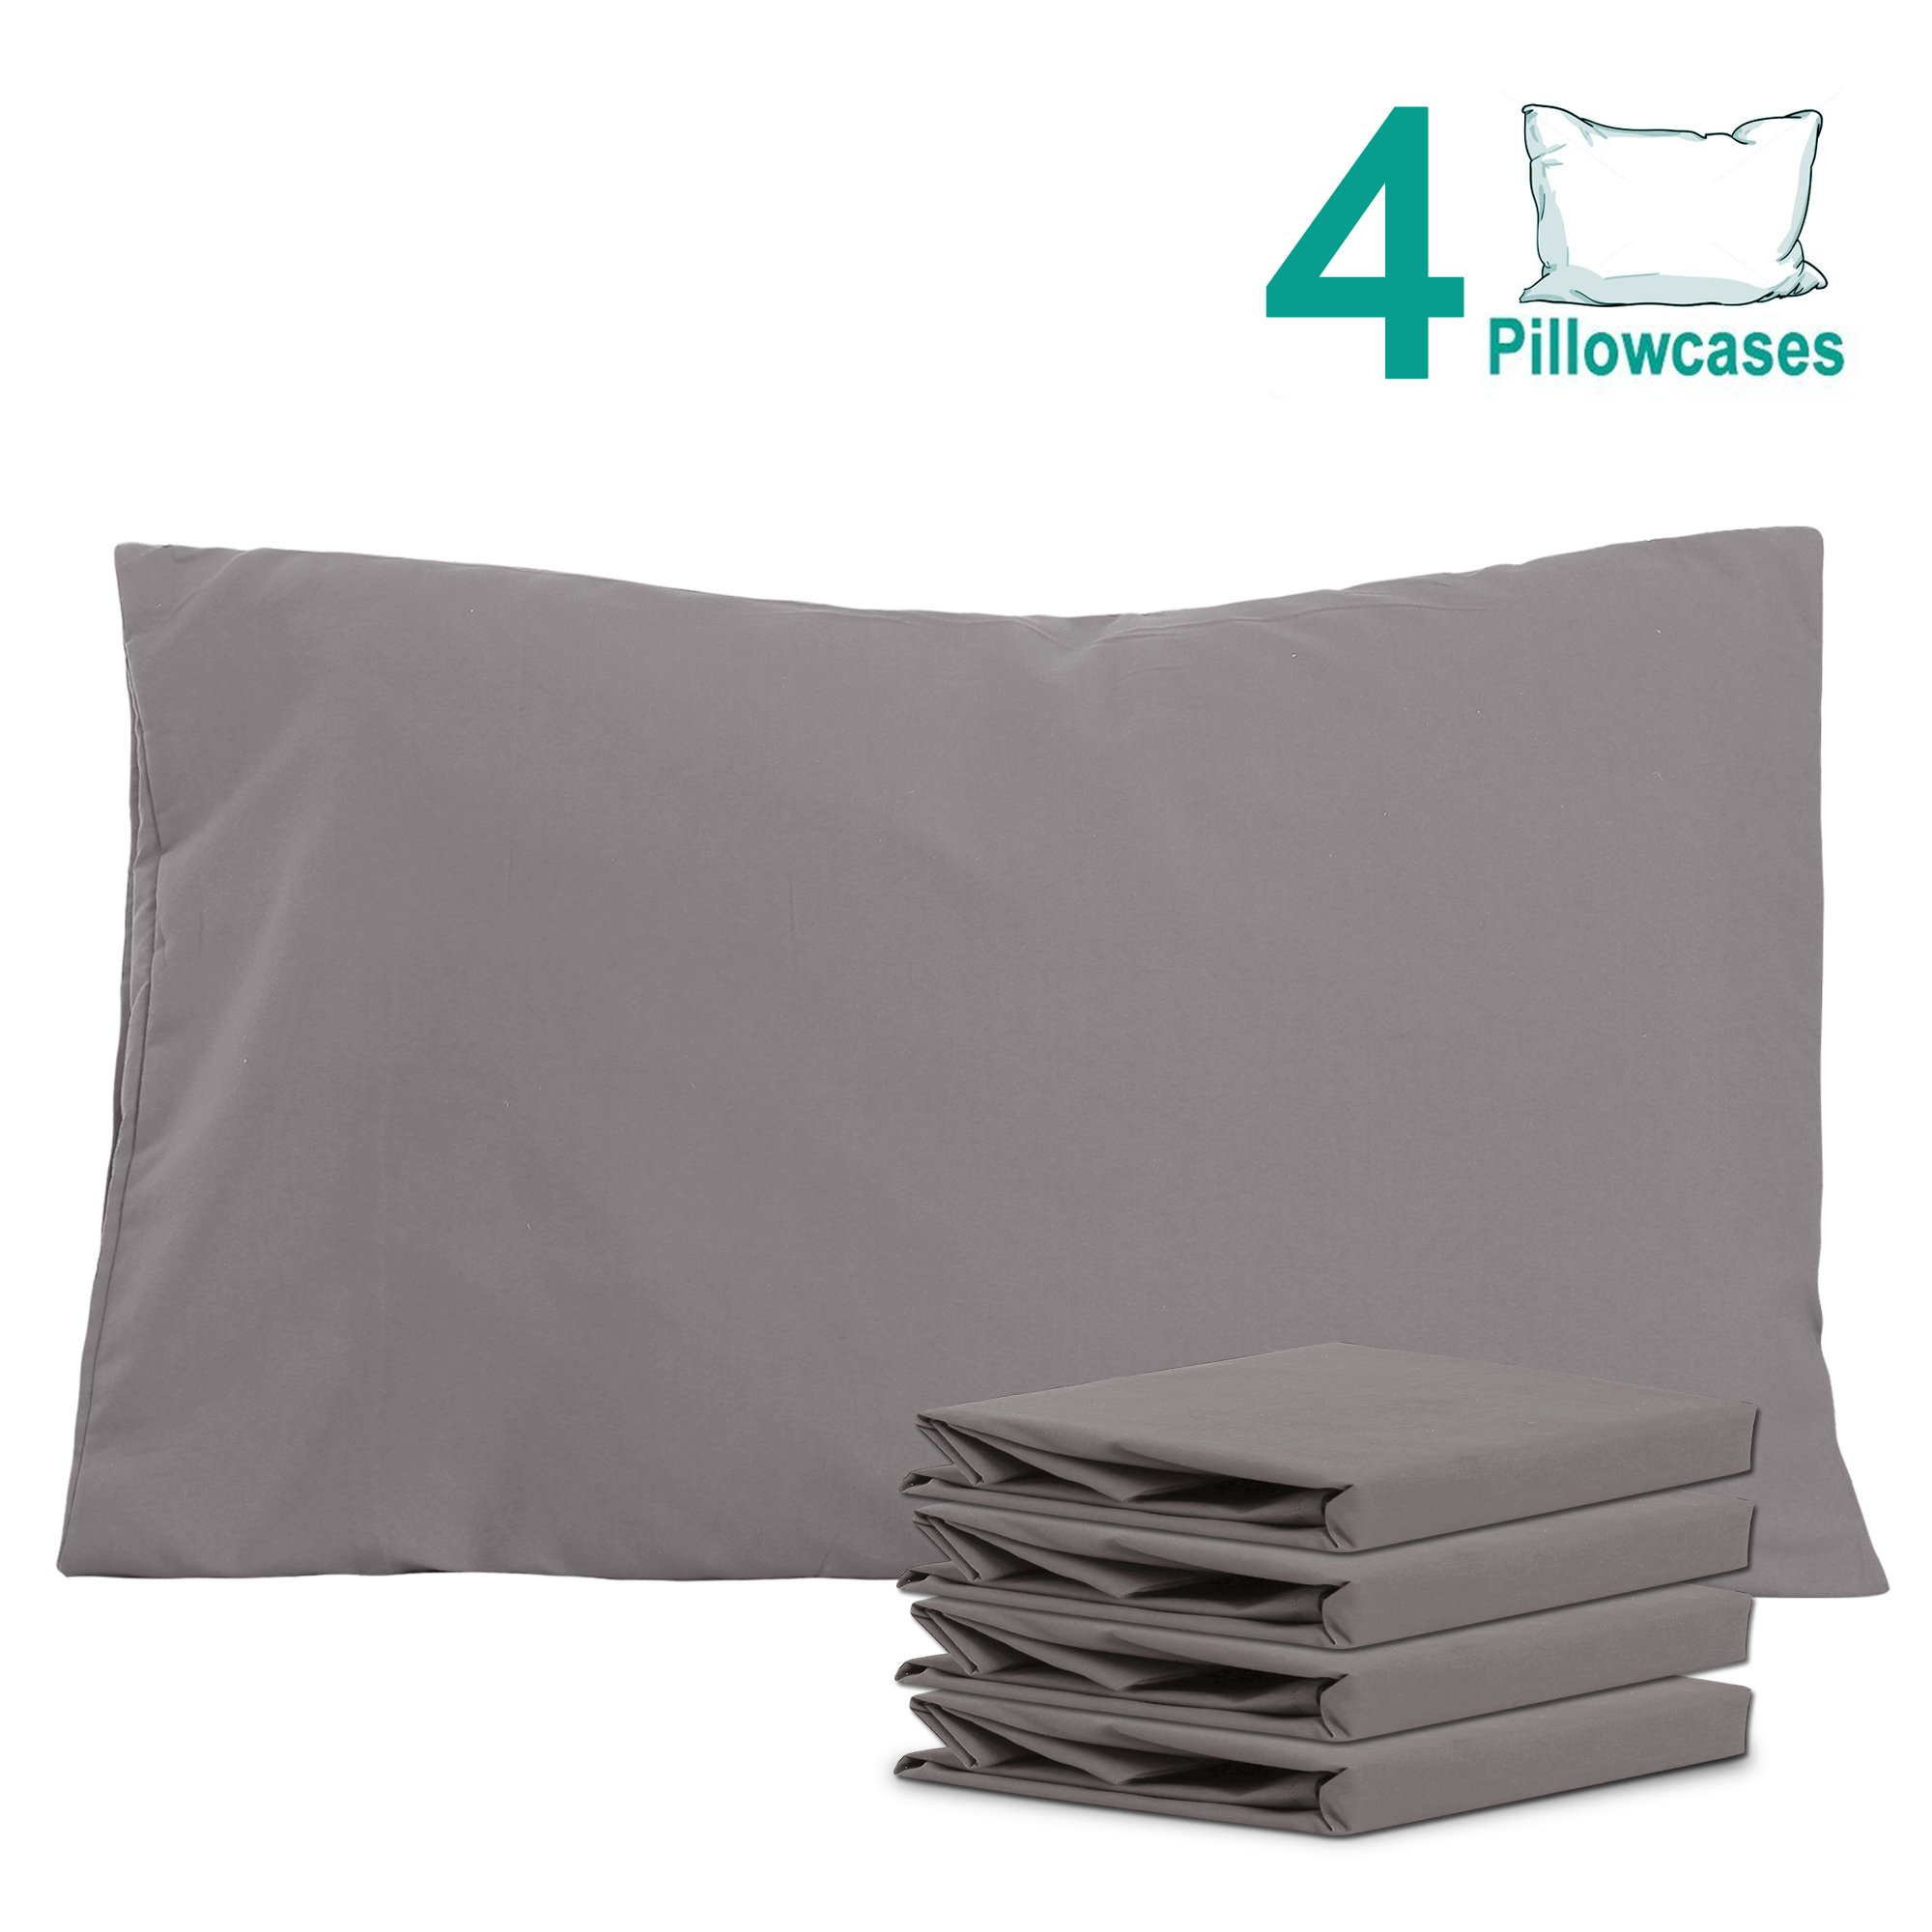 NTBAY 100% Brushed Microfiber Pillowcases Set of 4, Soft and Cozy, Wrinkle, Fade, Stain Resistant, 20''x 30'', Dark Grey